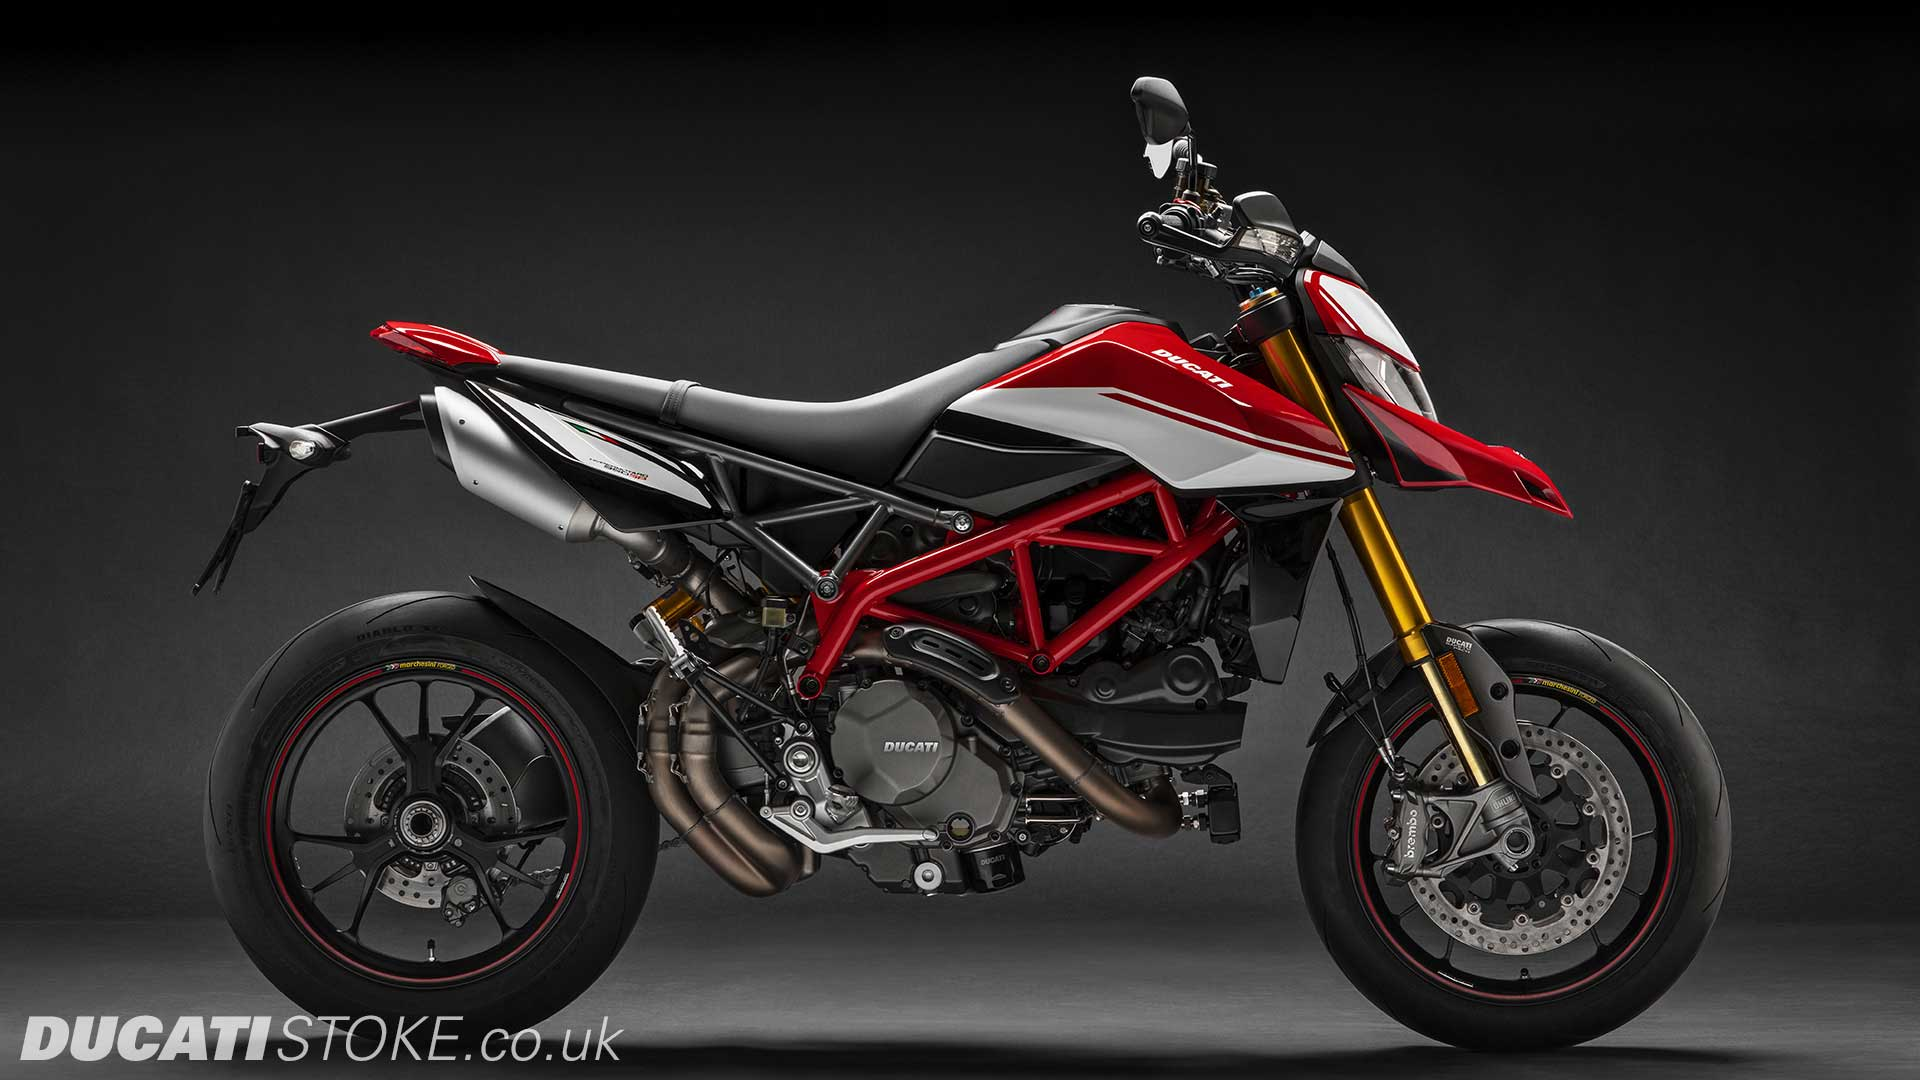 2019 Ducati Hypermotard 950 SP for sale at Ducati Preston, Lancashire, Scotland